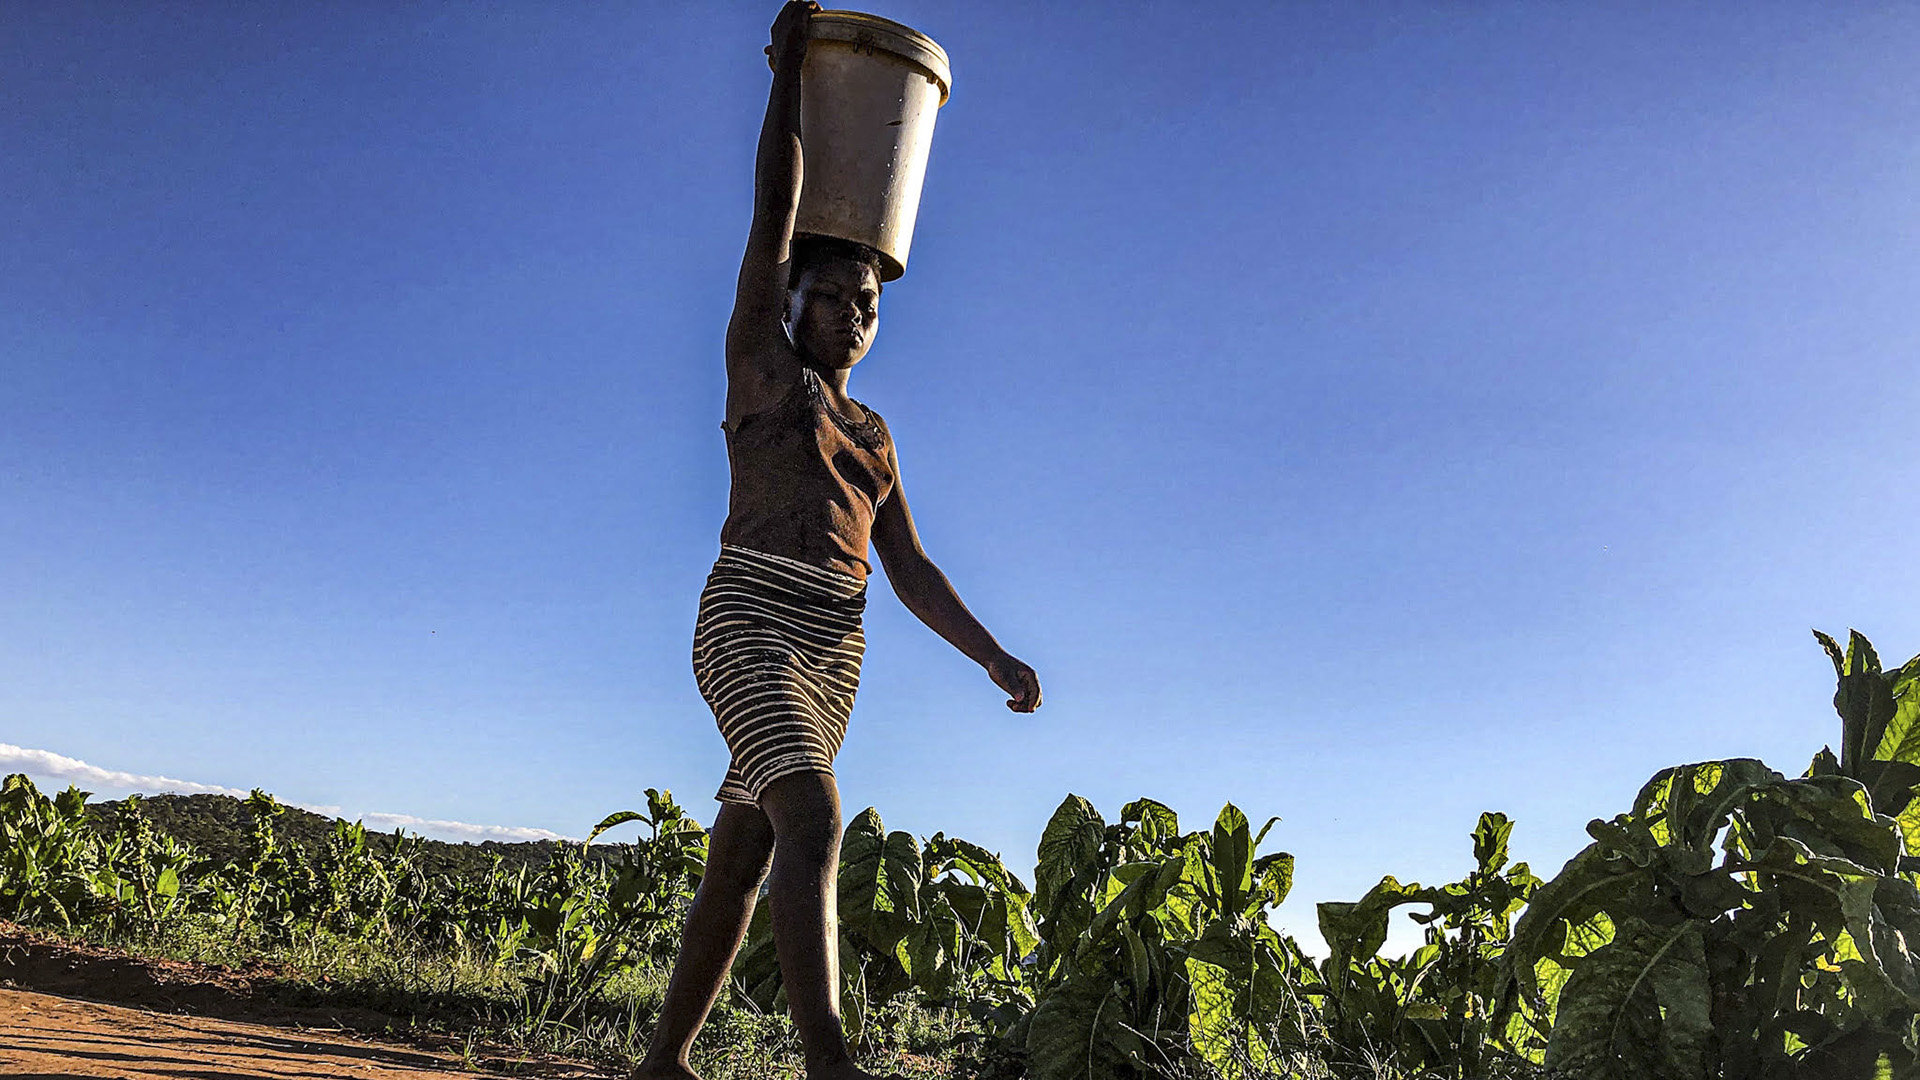 Seen But Not Counted: The Plight Of Immigrants In Zimbabwe